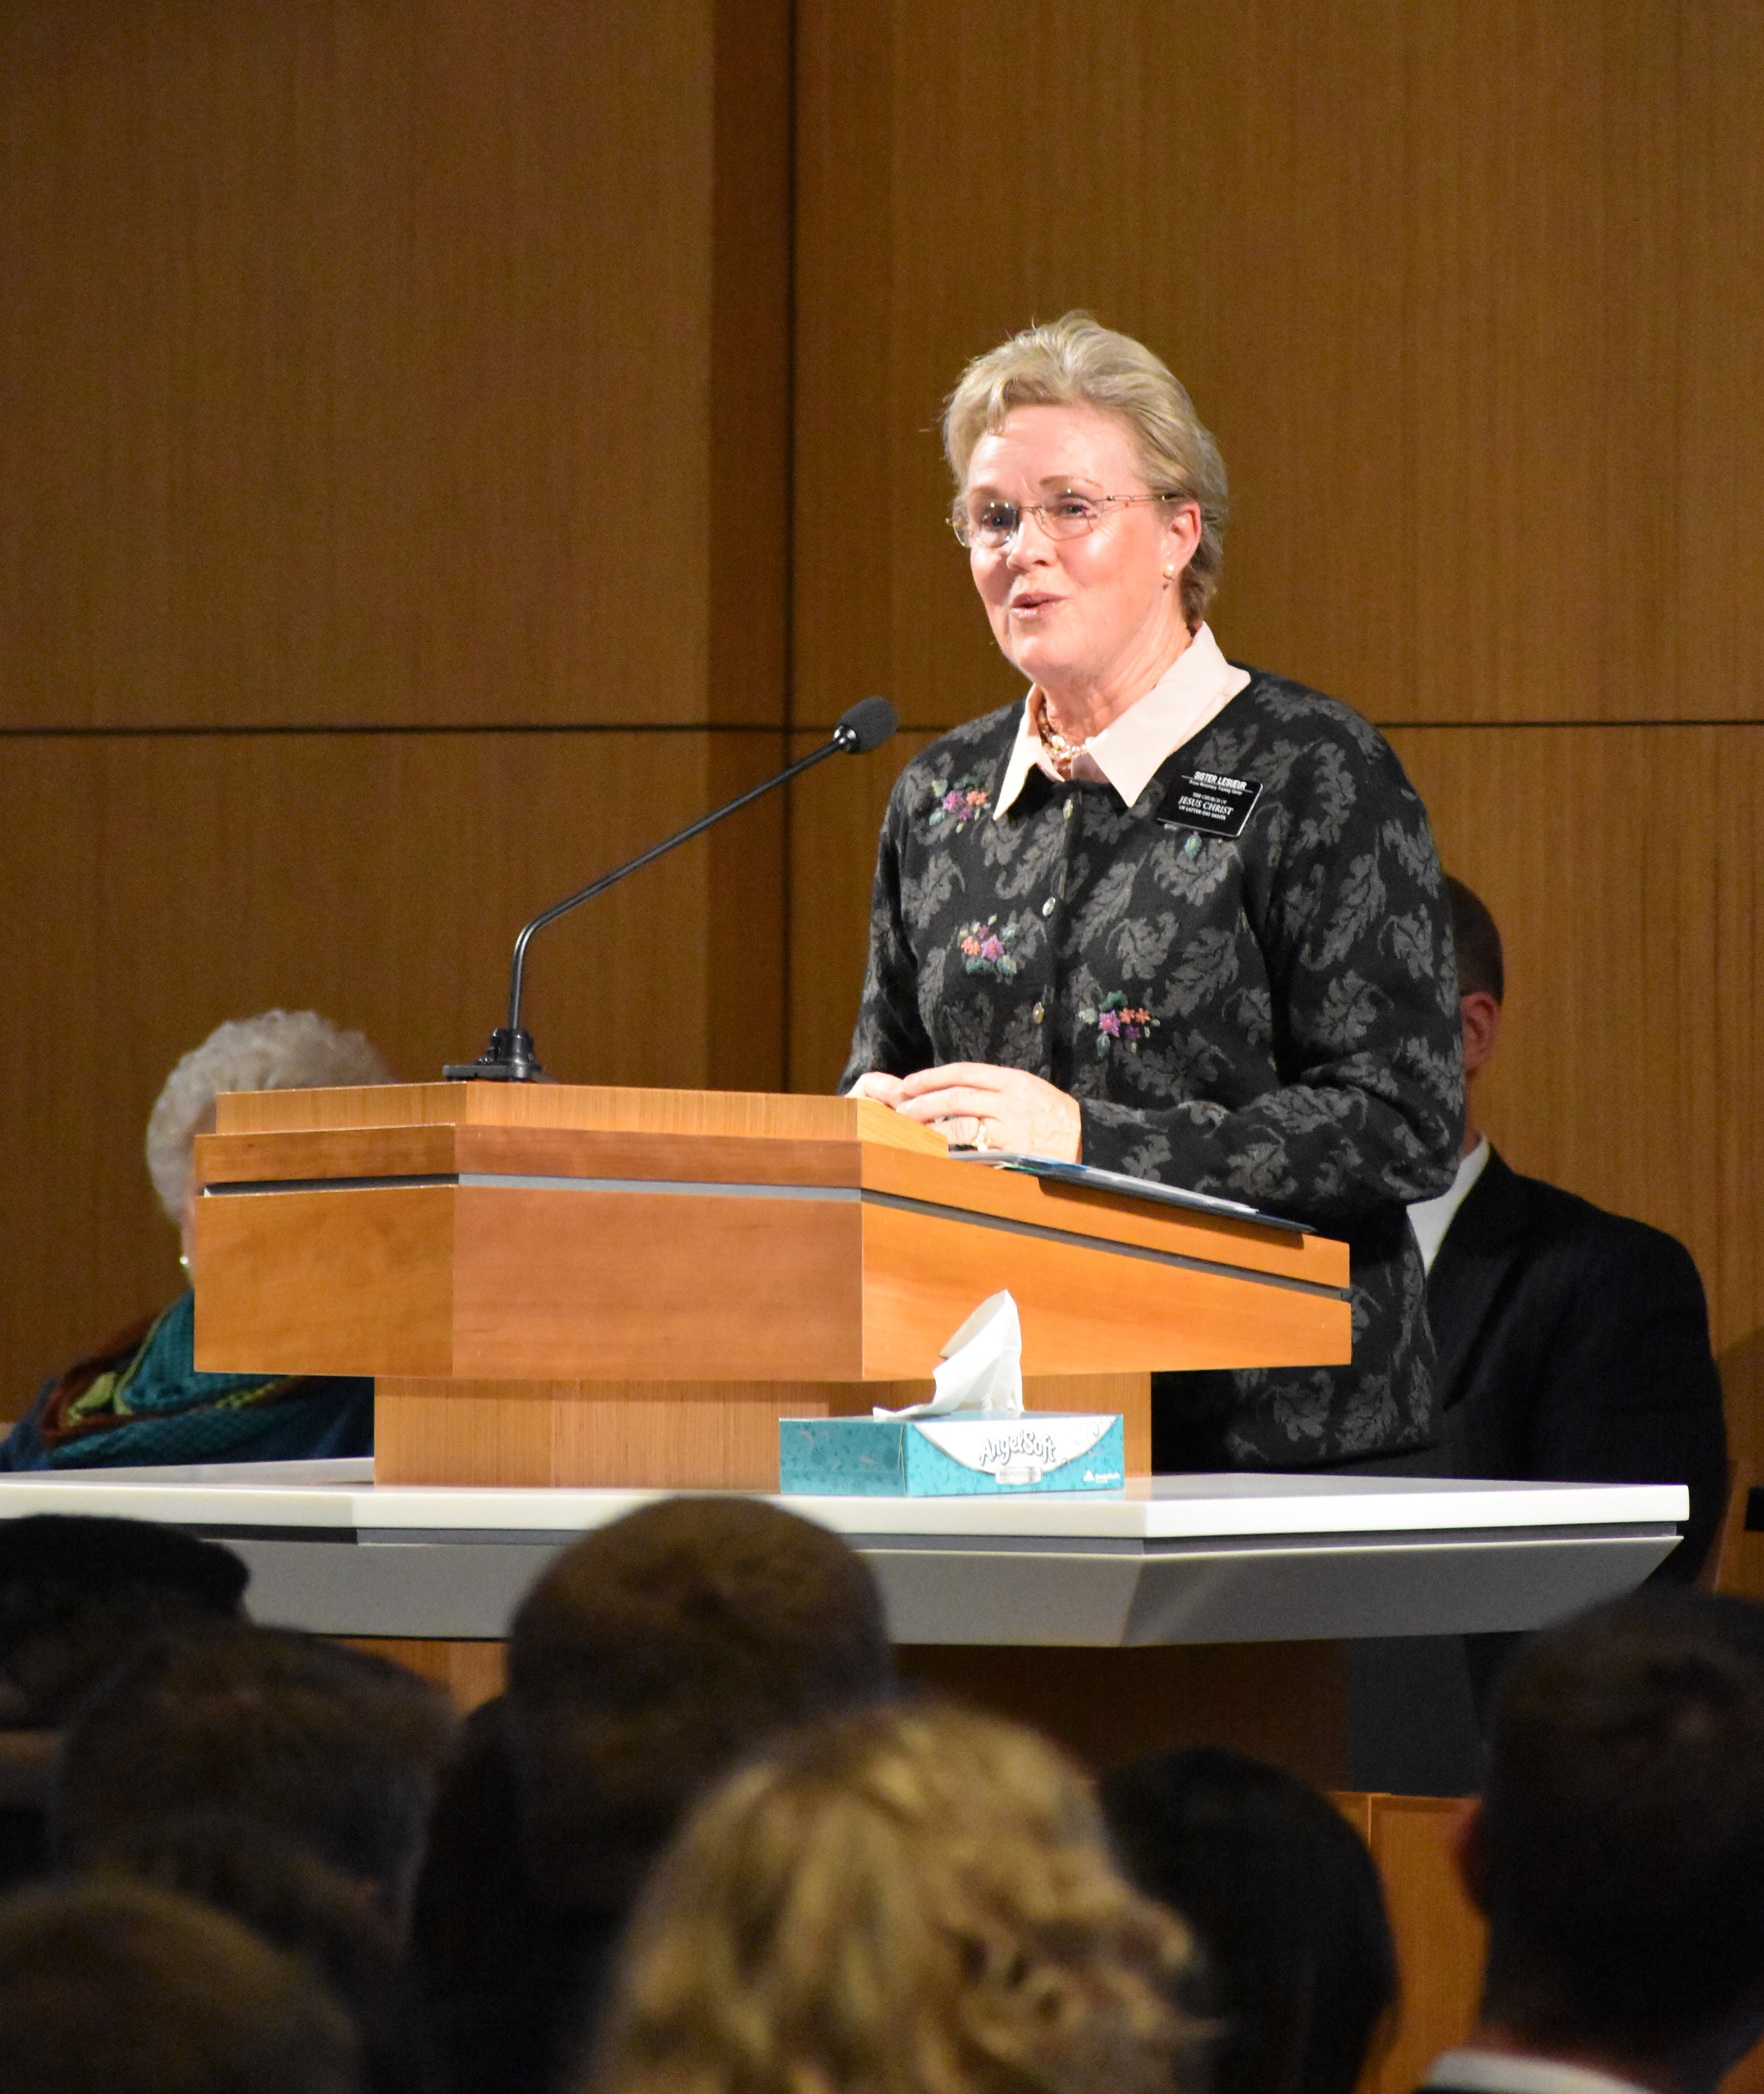 Sister Nancy LeSueur, the Relief Society president for the Provo Missionary Training Center and wife of MTC President David E. LeSueur, speaks to the new missionaries who arrived at the missionary training center earlier that afternoon on Wednesday, Jan. 16, 2019.